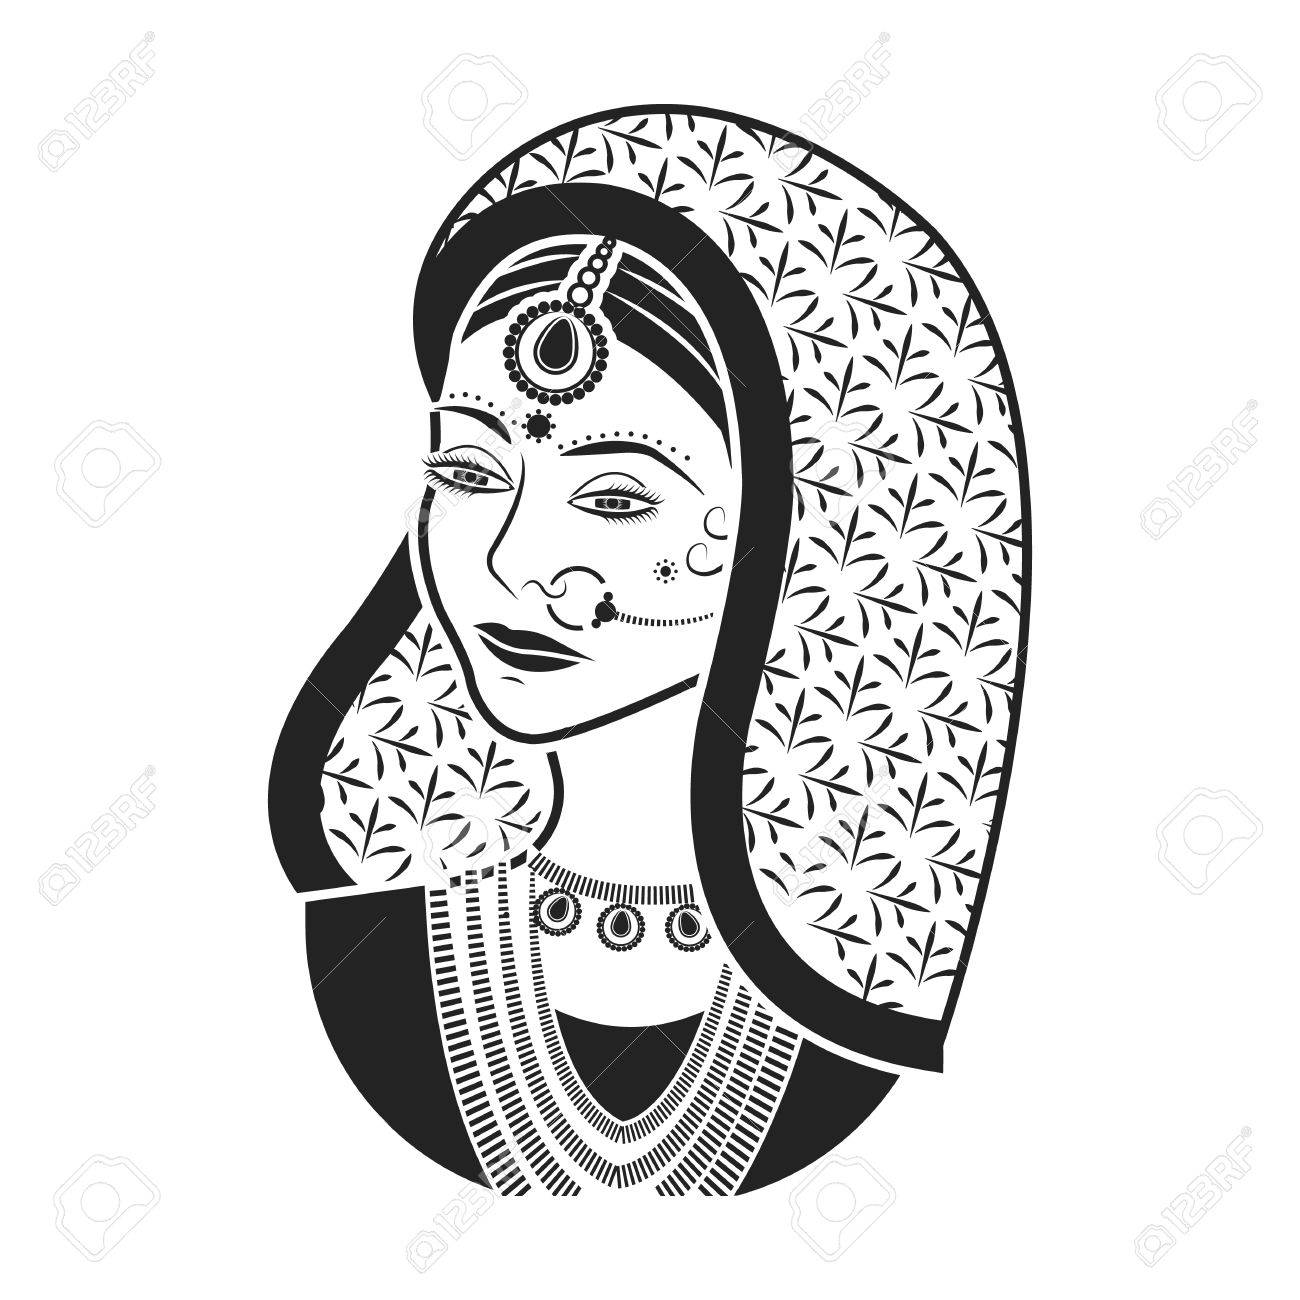 Indian woman icon in black style isolated on white background.